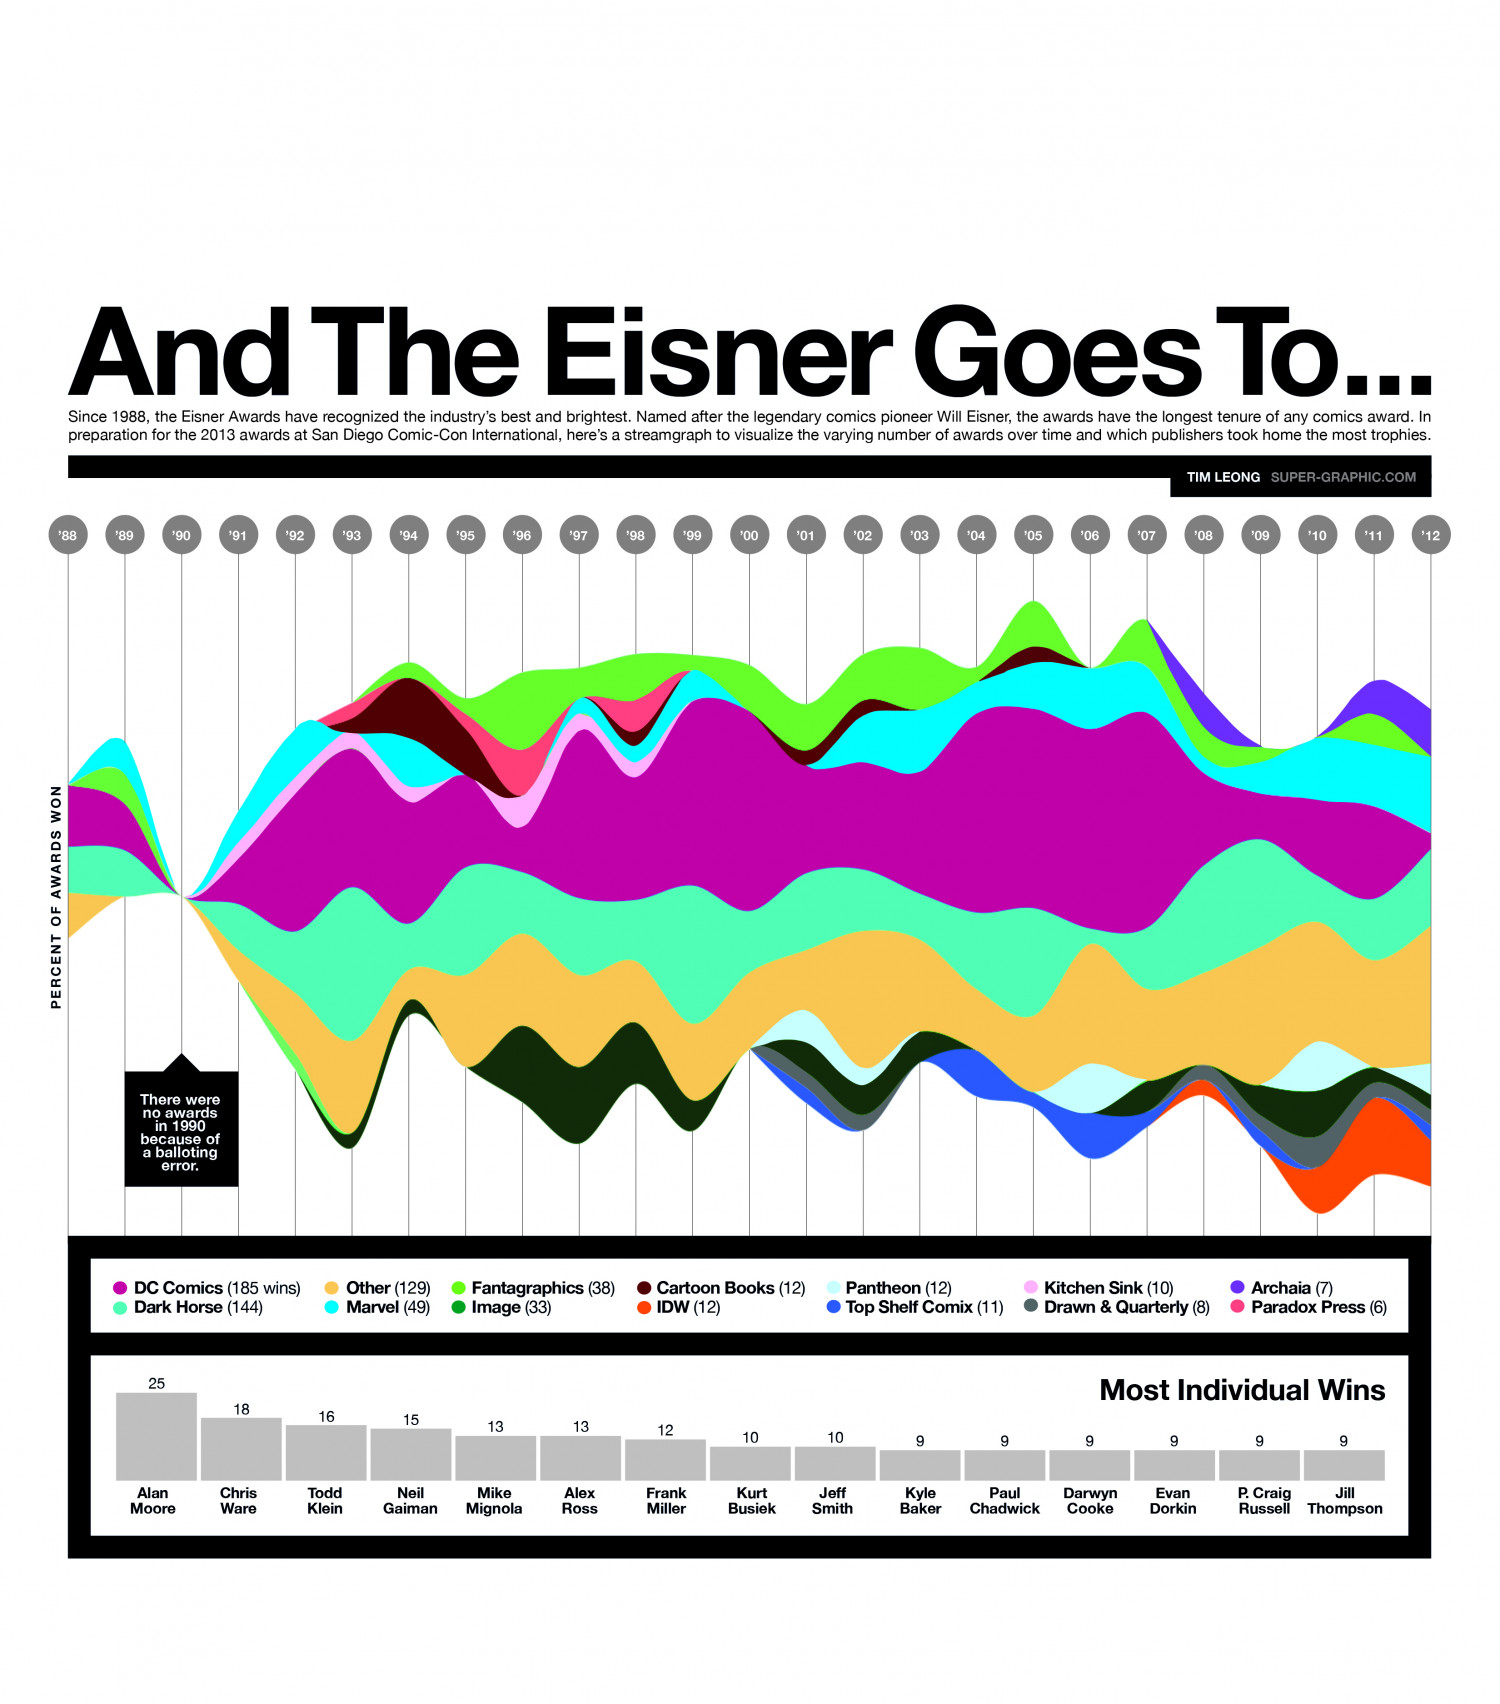 And The Eisner Goes To... Infographic